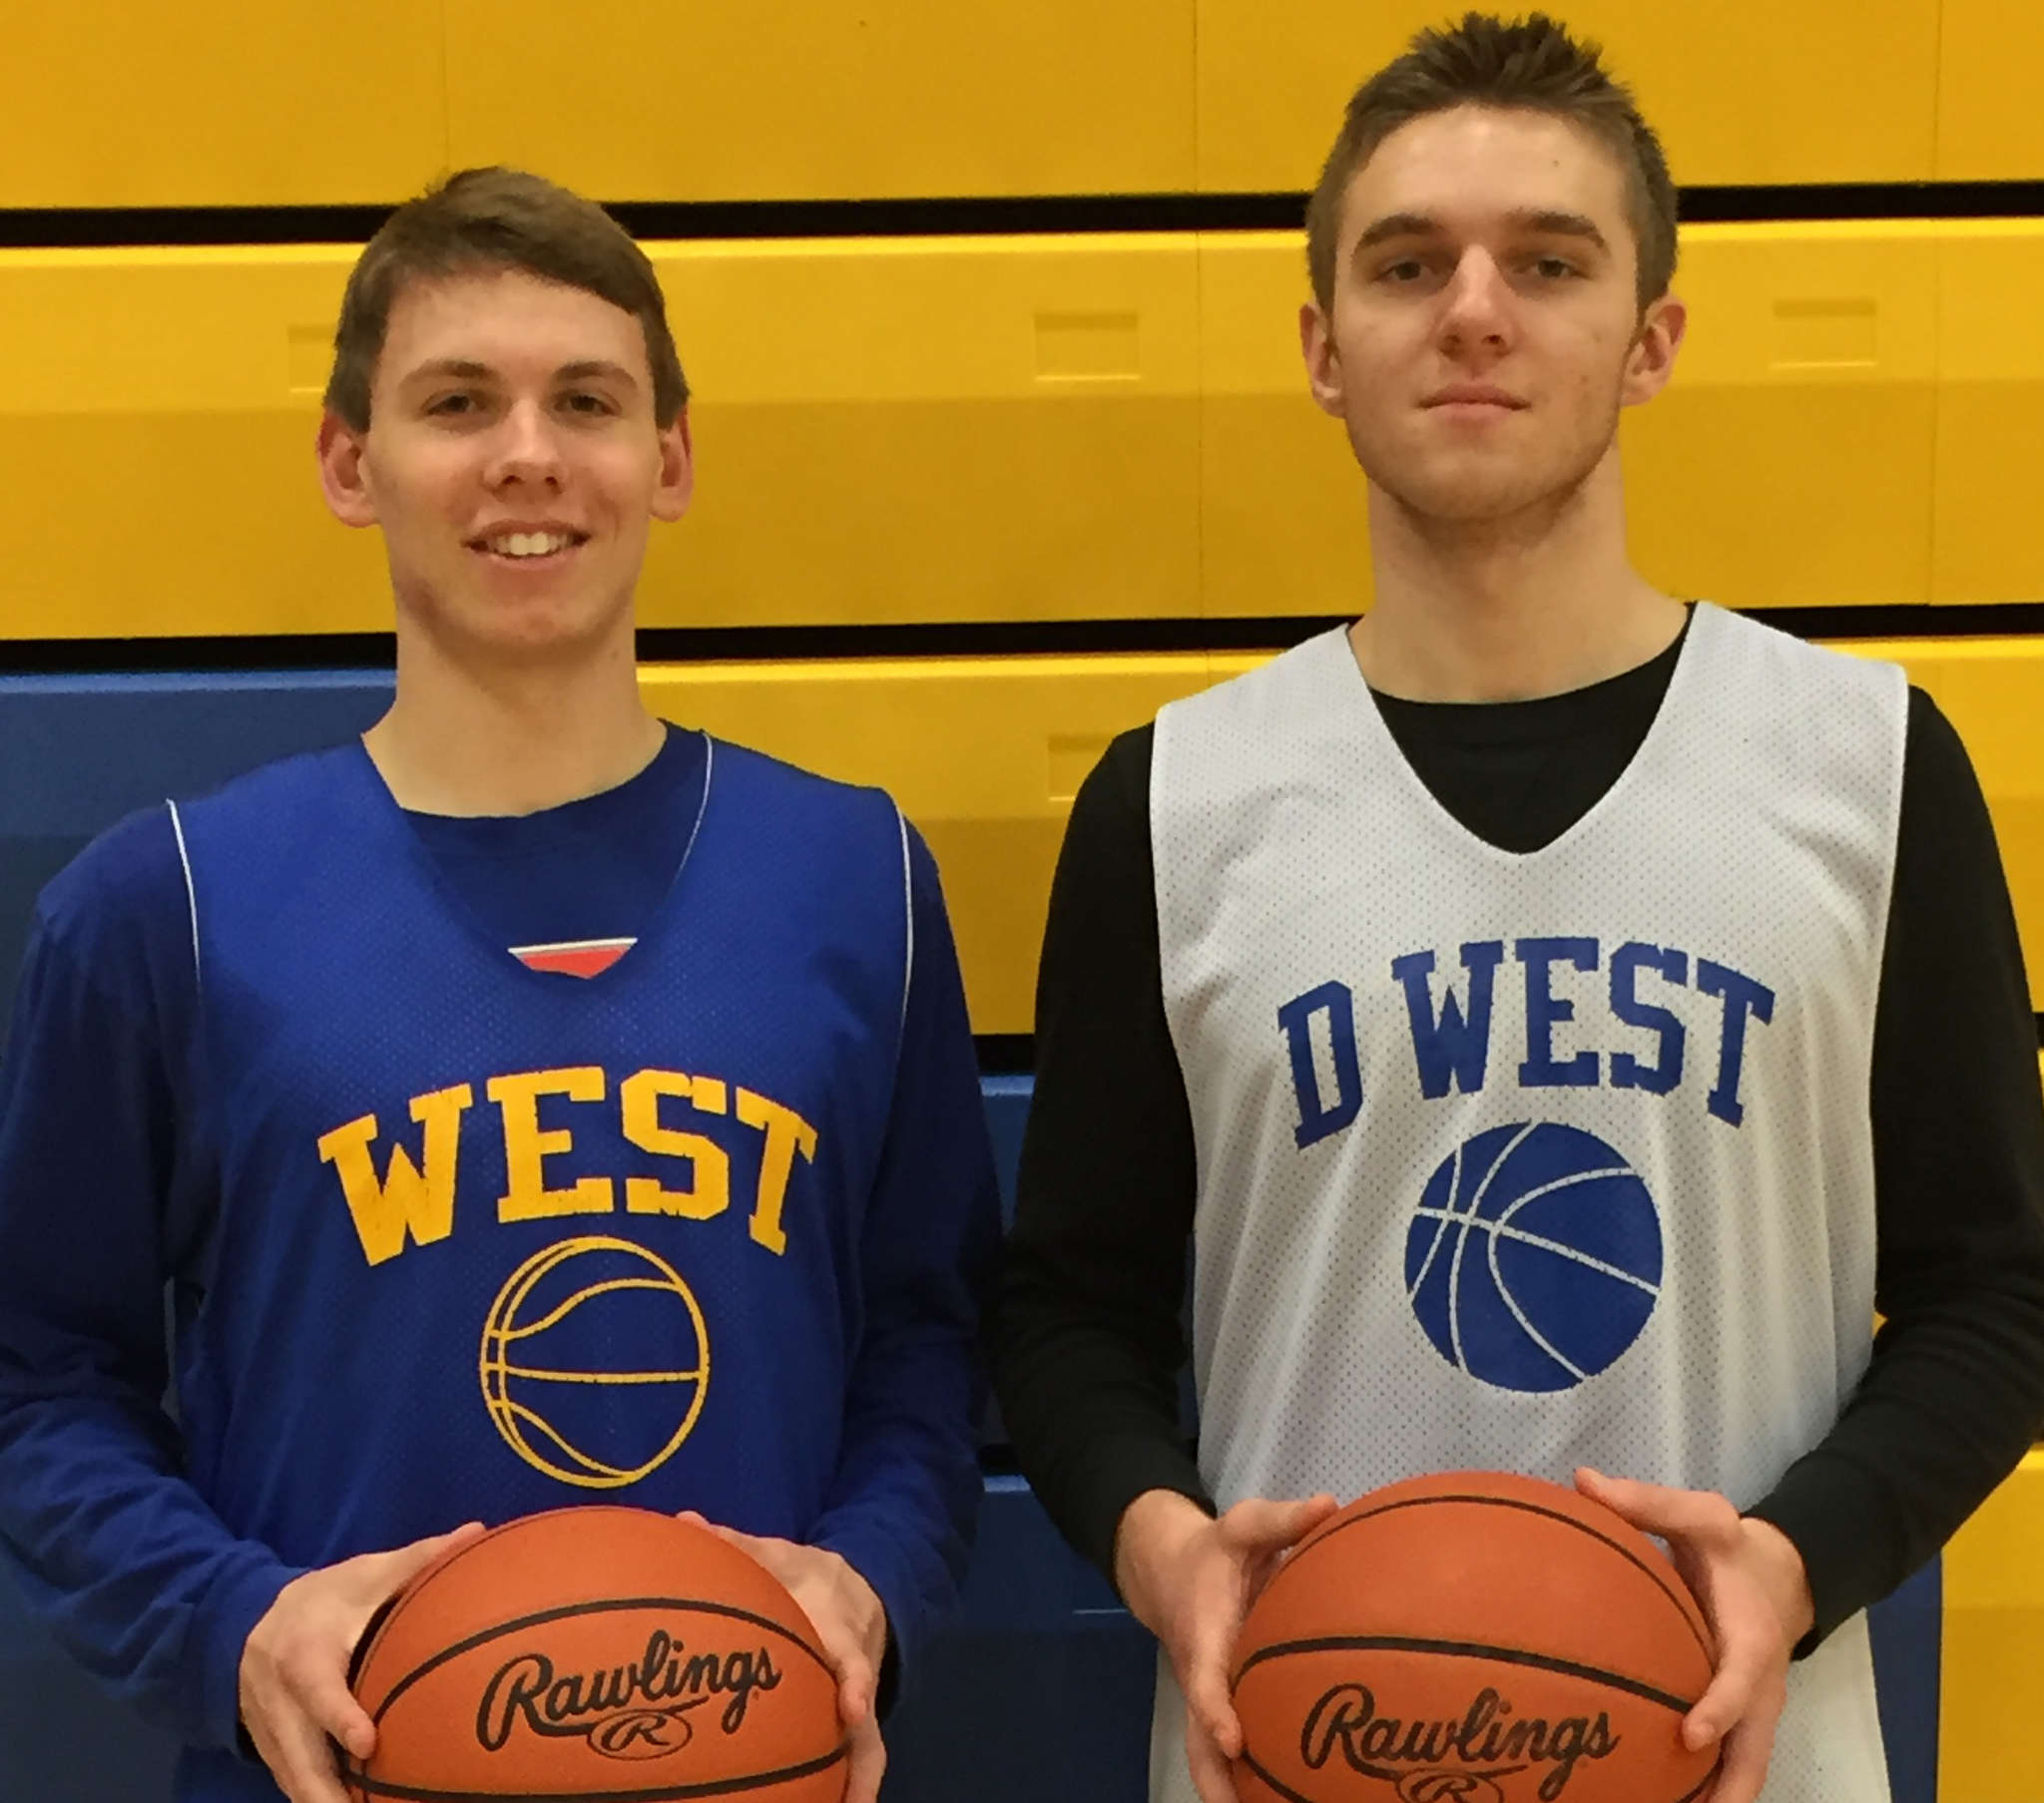 Downingtown West´s 1-2 punch: Ryan Betley (left) is averaging 18.5 points per game, and Josh Warren 15.4. Both seniors are headed for the Ivy League in the fall, the 6-foot-5 Betley to Penn and the 6-8 Warren to Cornell.